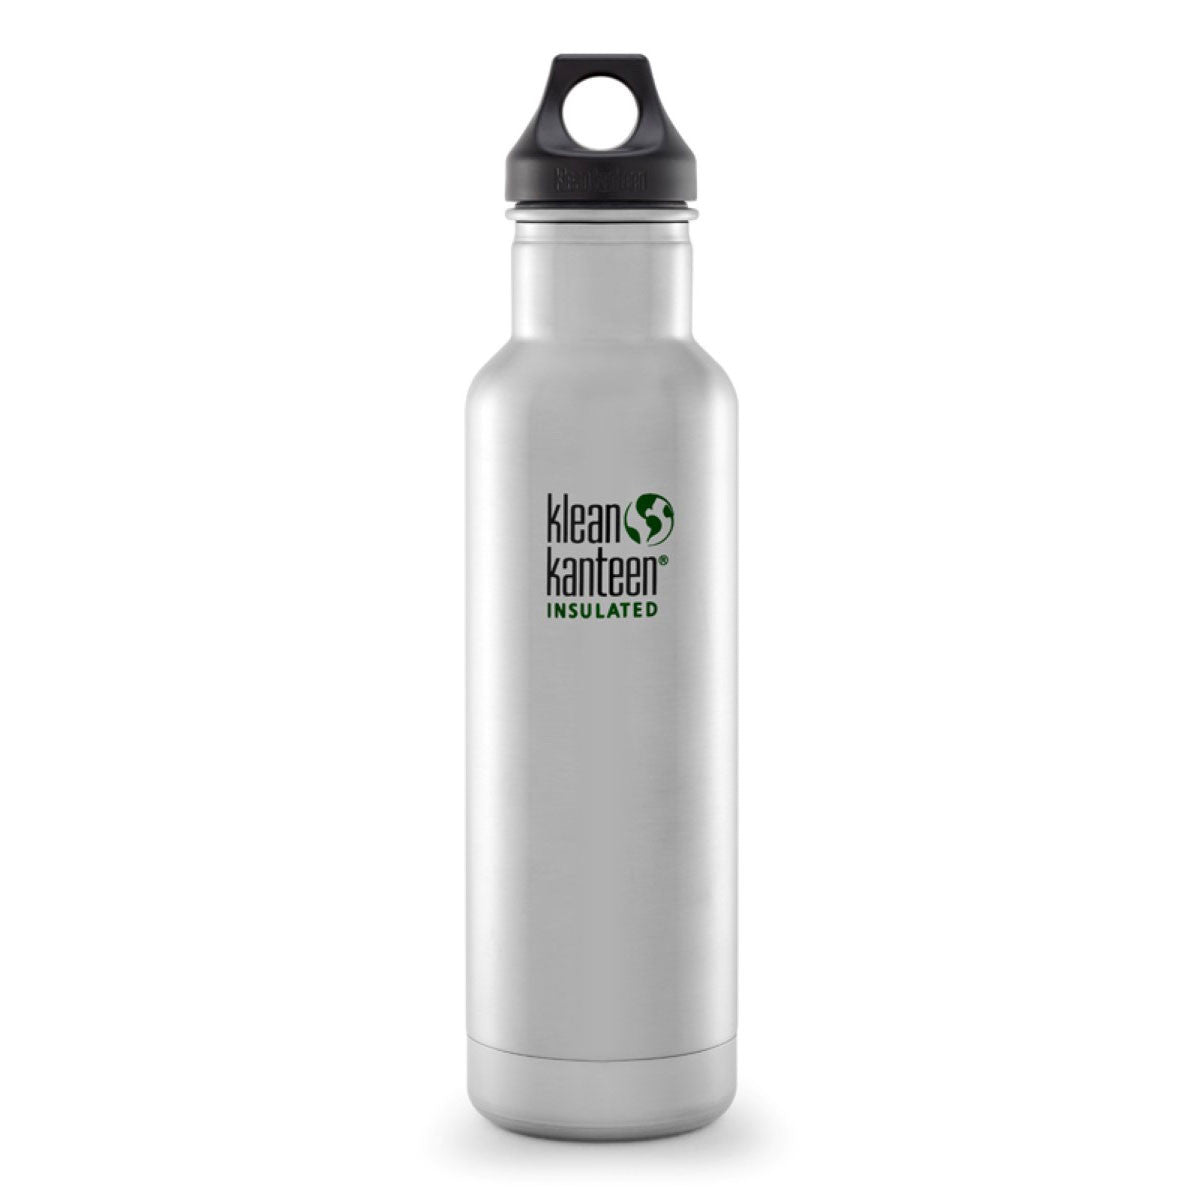 Klean Kanteen Stainless Steel Insulated Classic Water Bottle  592ml 20oz / Brushed Stainless - Klean Kanteen - Little Earth Nest - 10